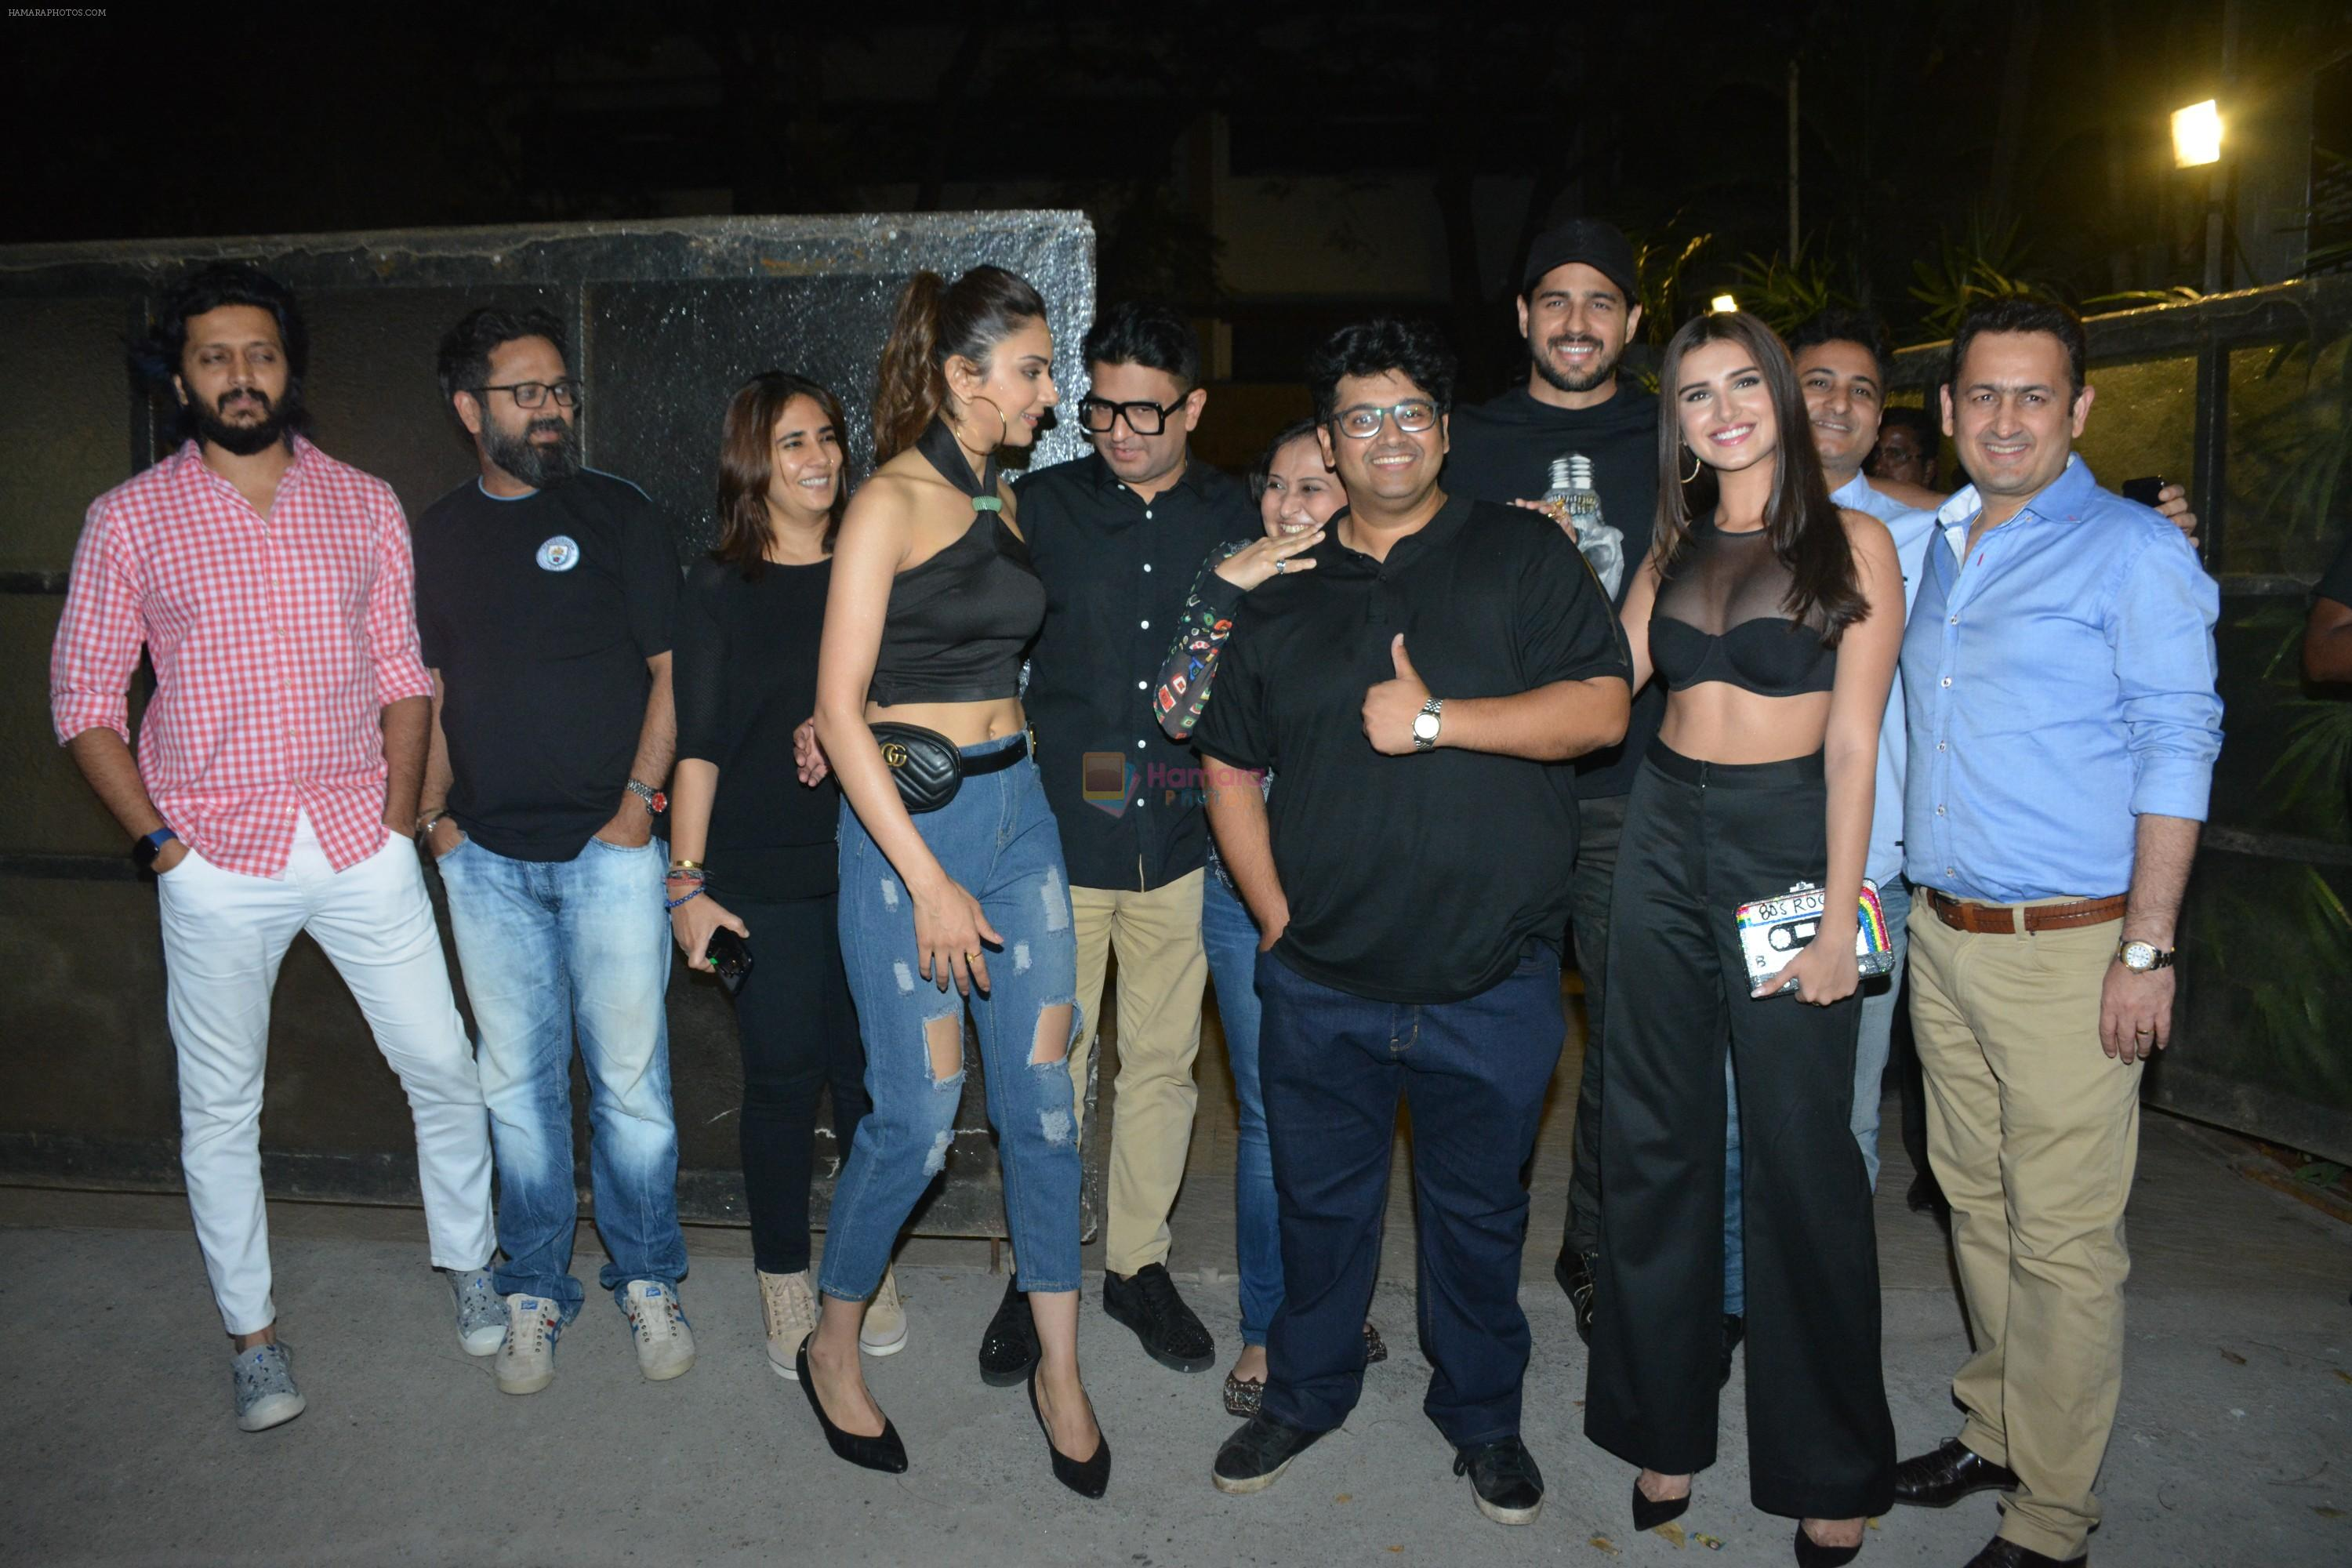 Rakul Preet Singh, Riteish Deshmukh, Tara Sutaria, Sidharth Malhotra at the Wrapup party of film Marjaavaan at Otters club in bandra on 18th March 2019